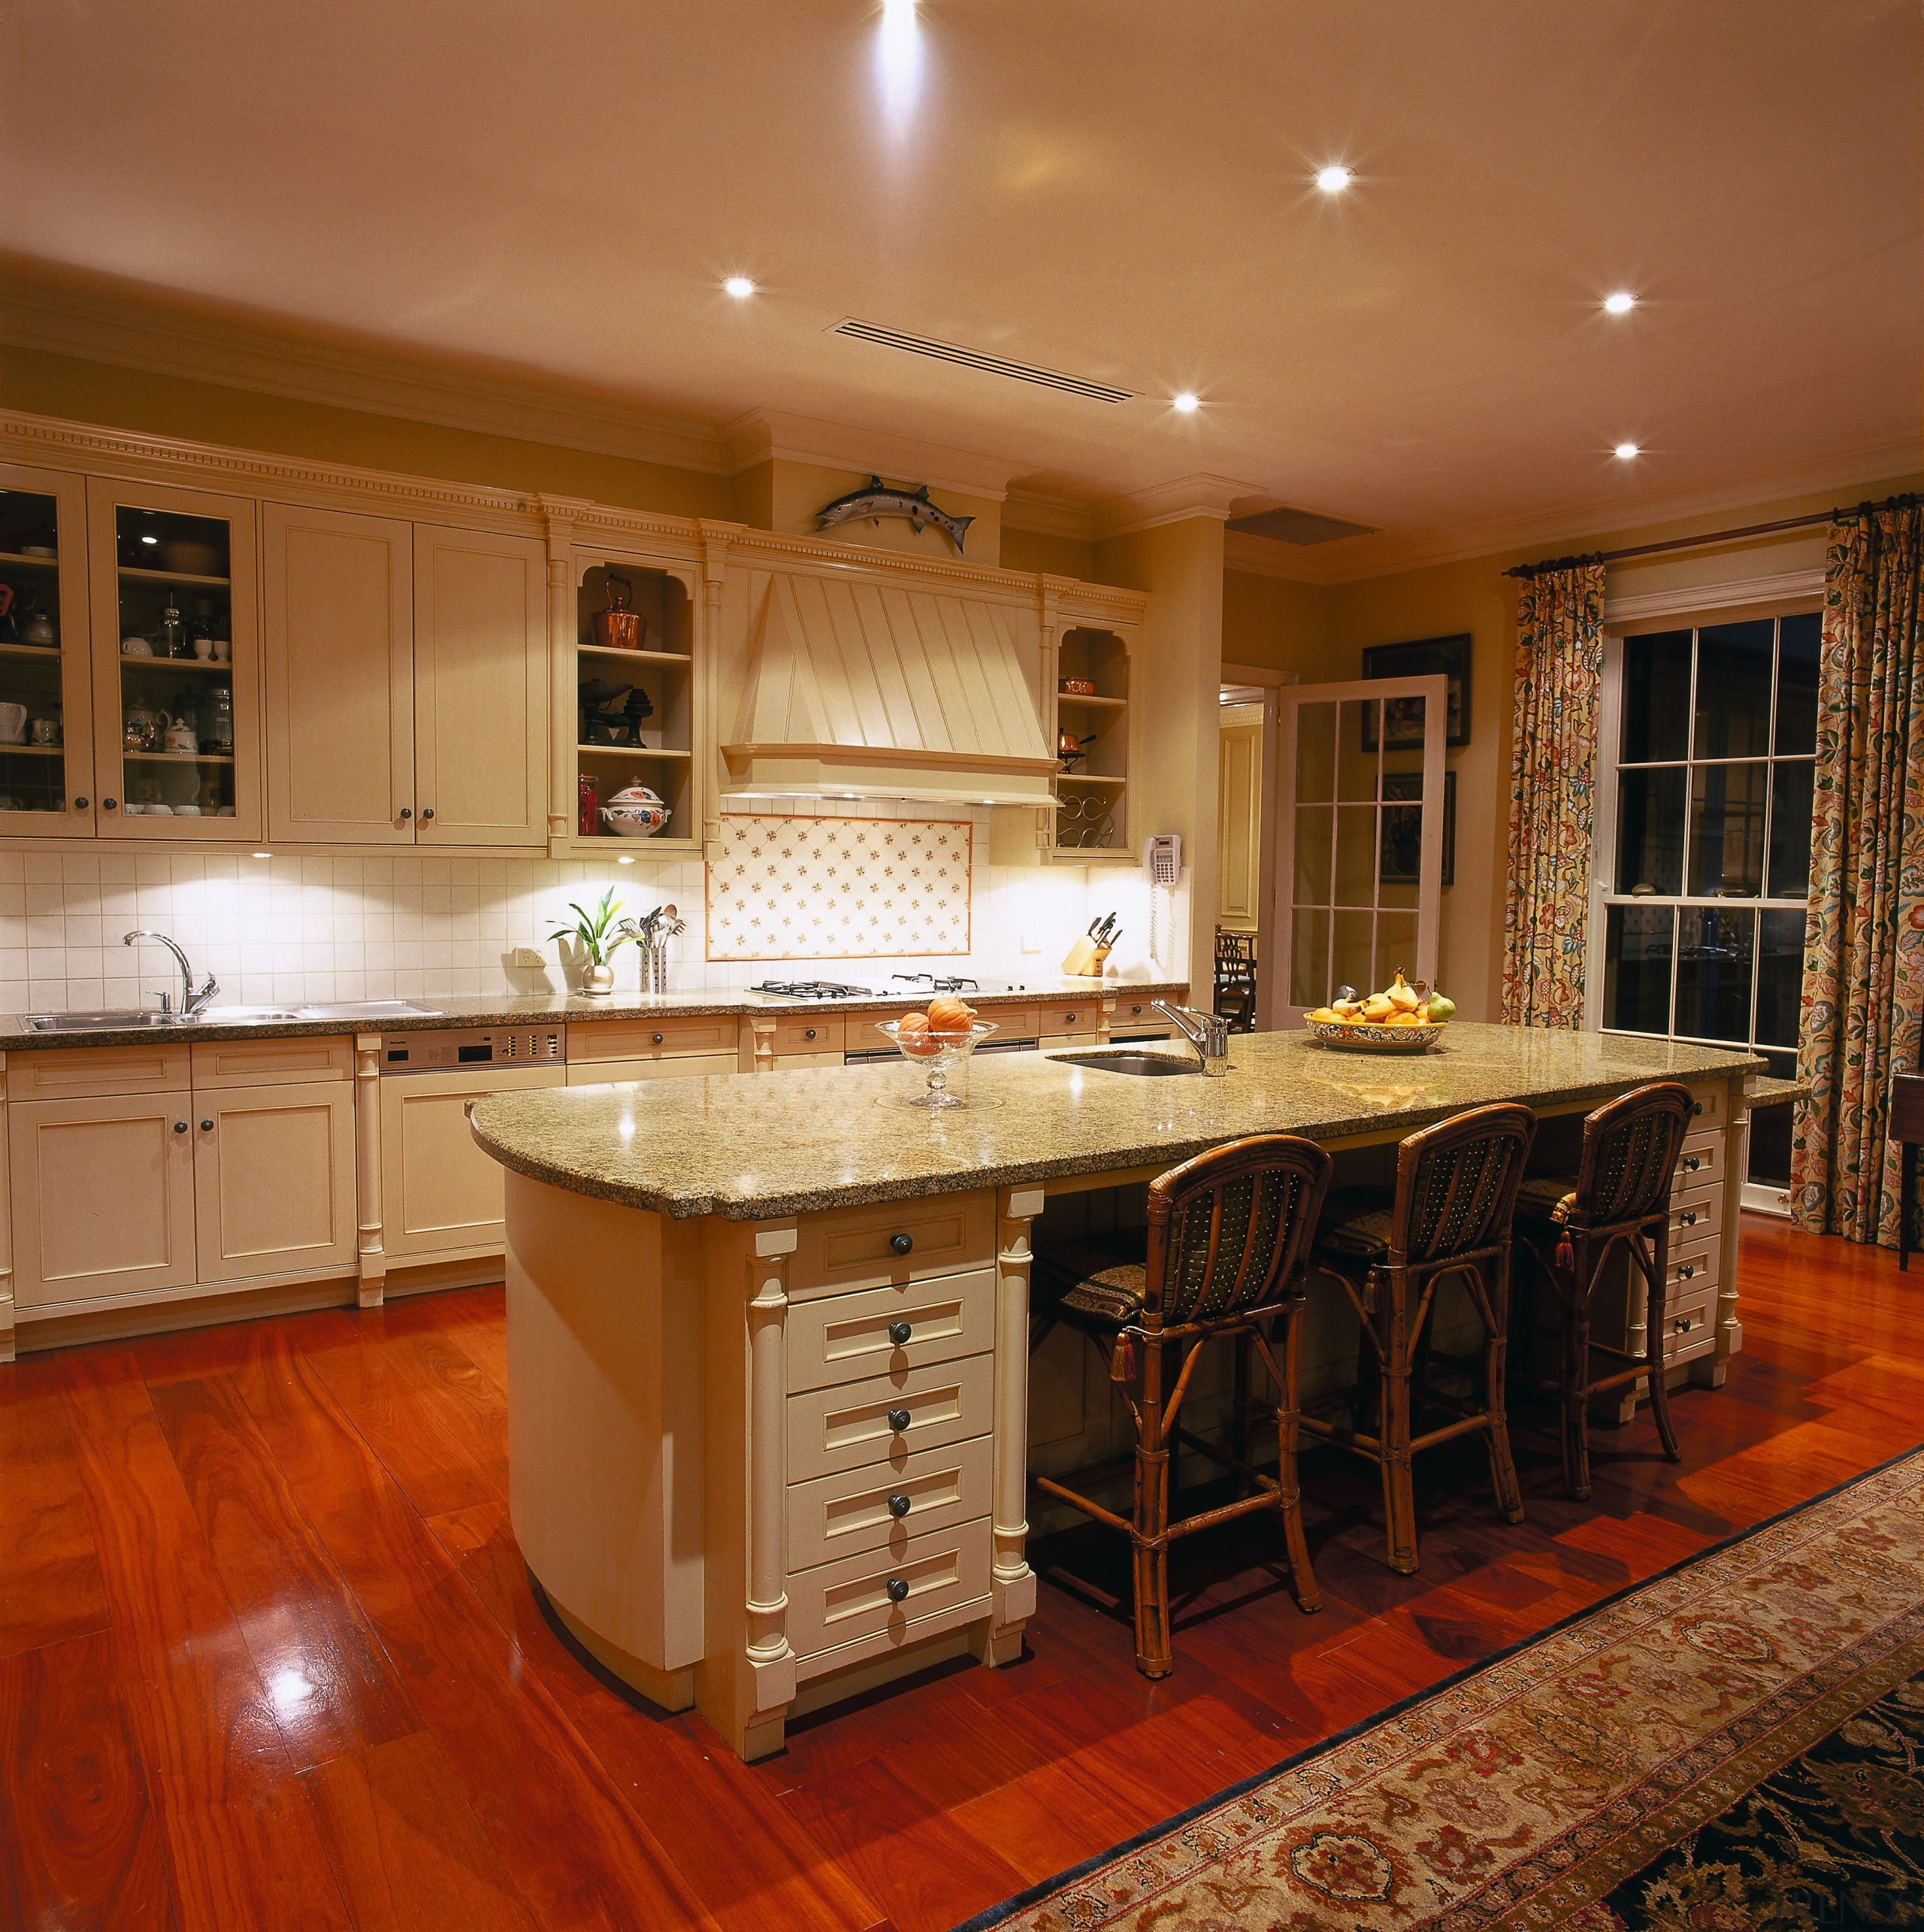 View of the kitchen - View of the cabinetry, ceiling, countertop, cuisine classique, floor, flooring, hardwood, home, interior design, kitchen, real estate, room, table, under cabinet lighting, wood, wood flooring, brown